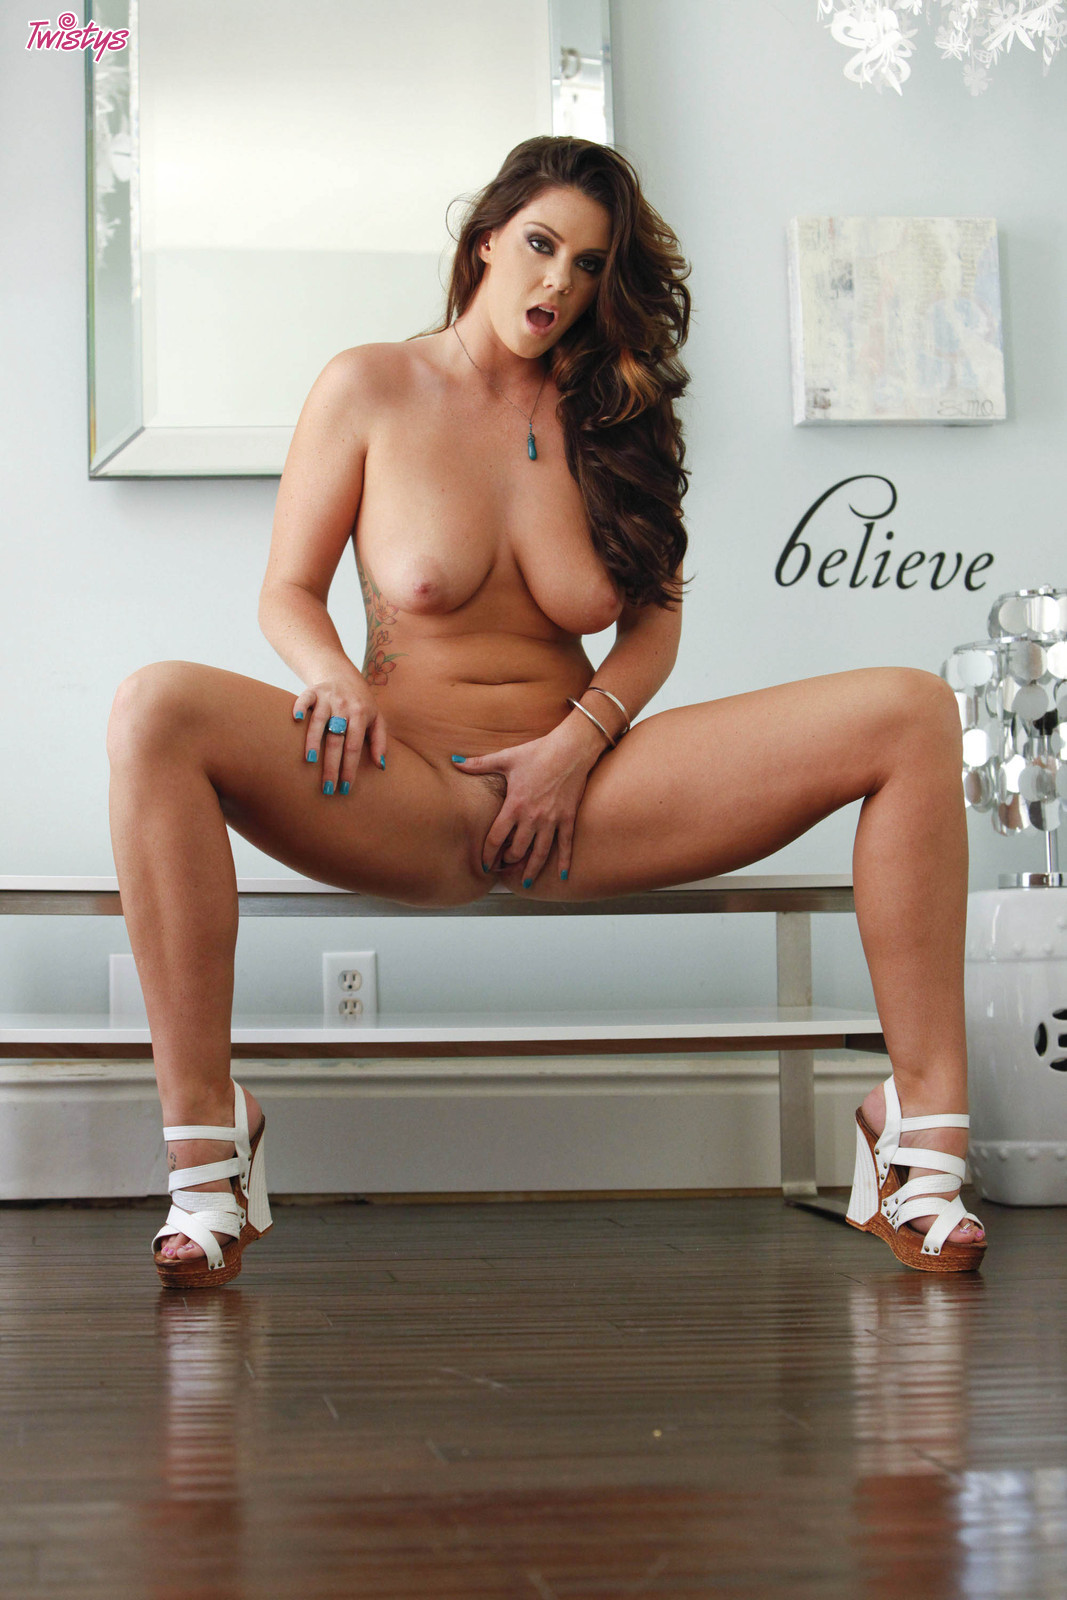 Alison tyler decides she needs some relief 6